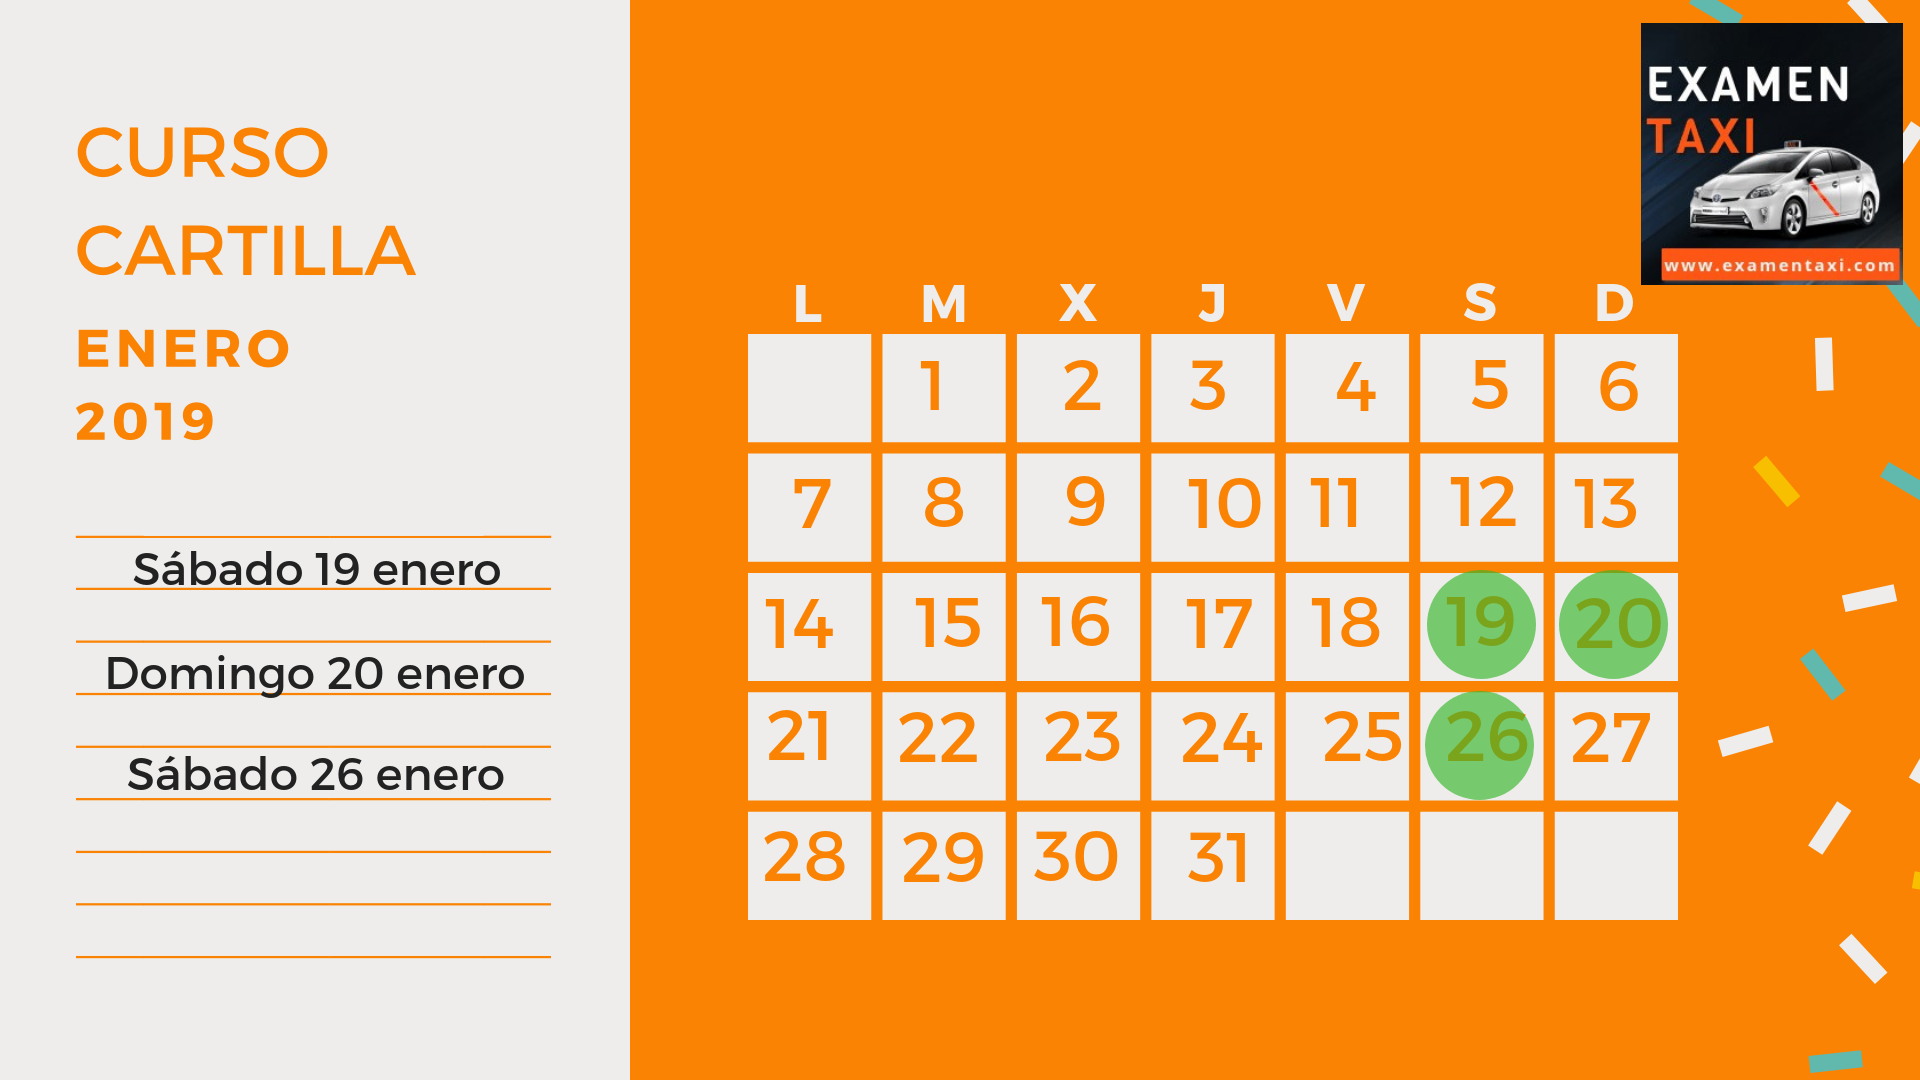 Calendario Curso Cartilla Enero 2019